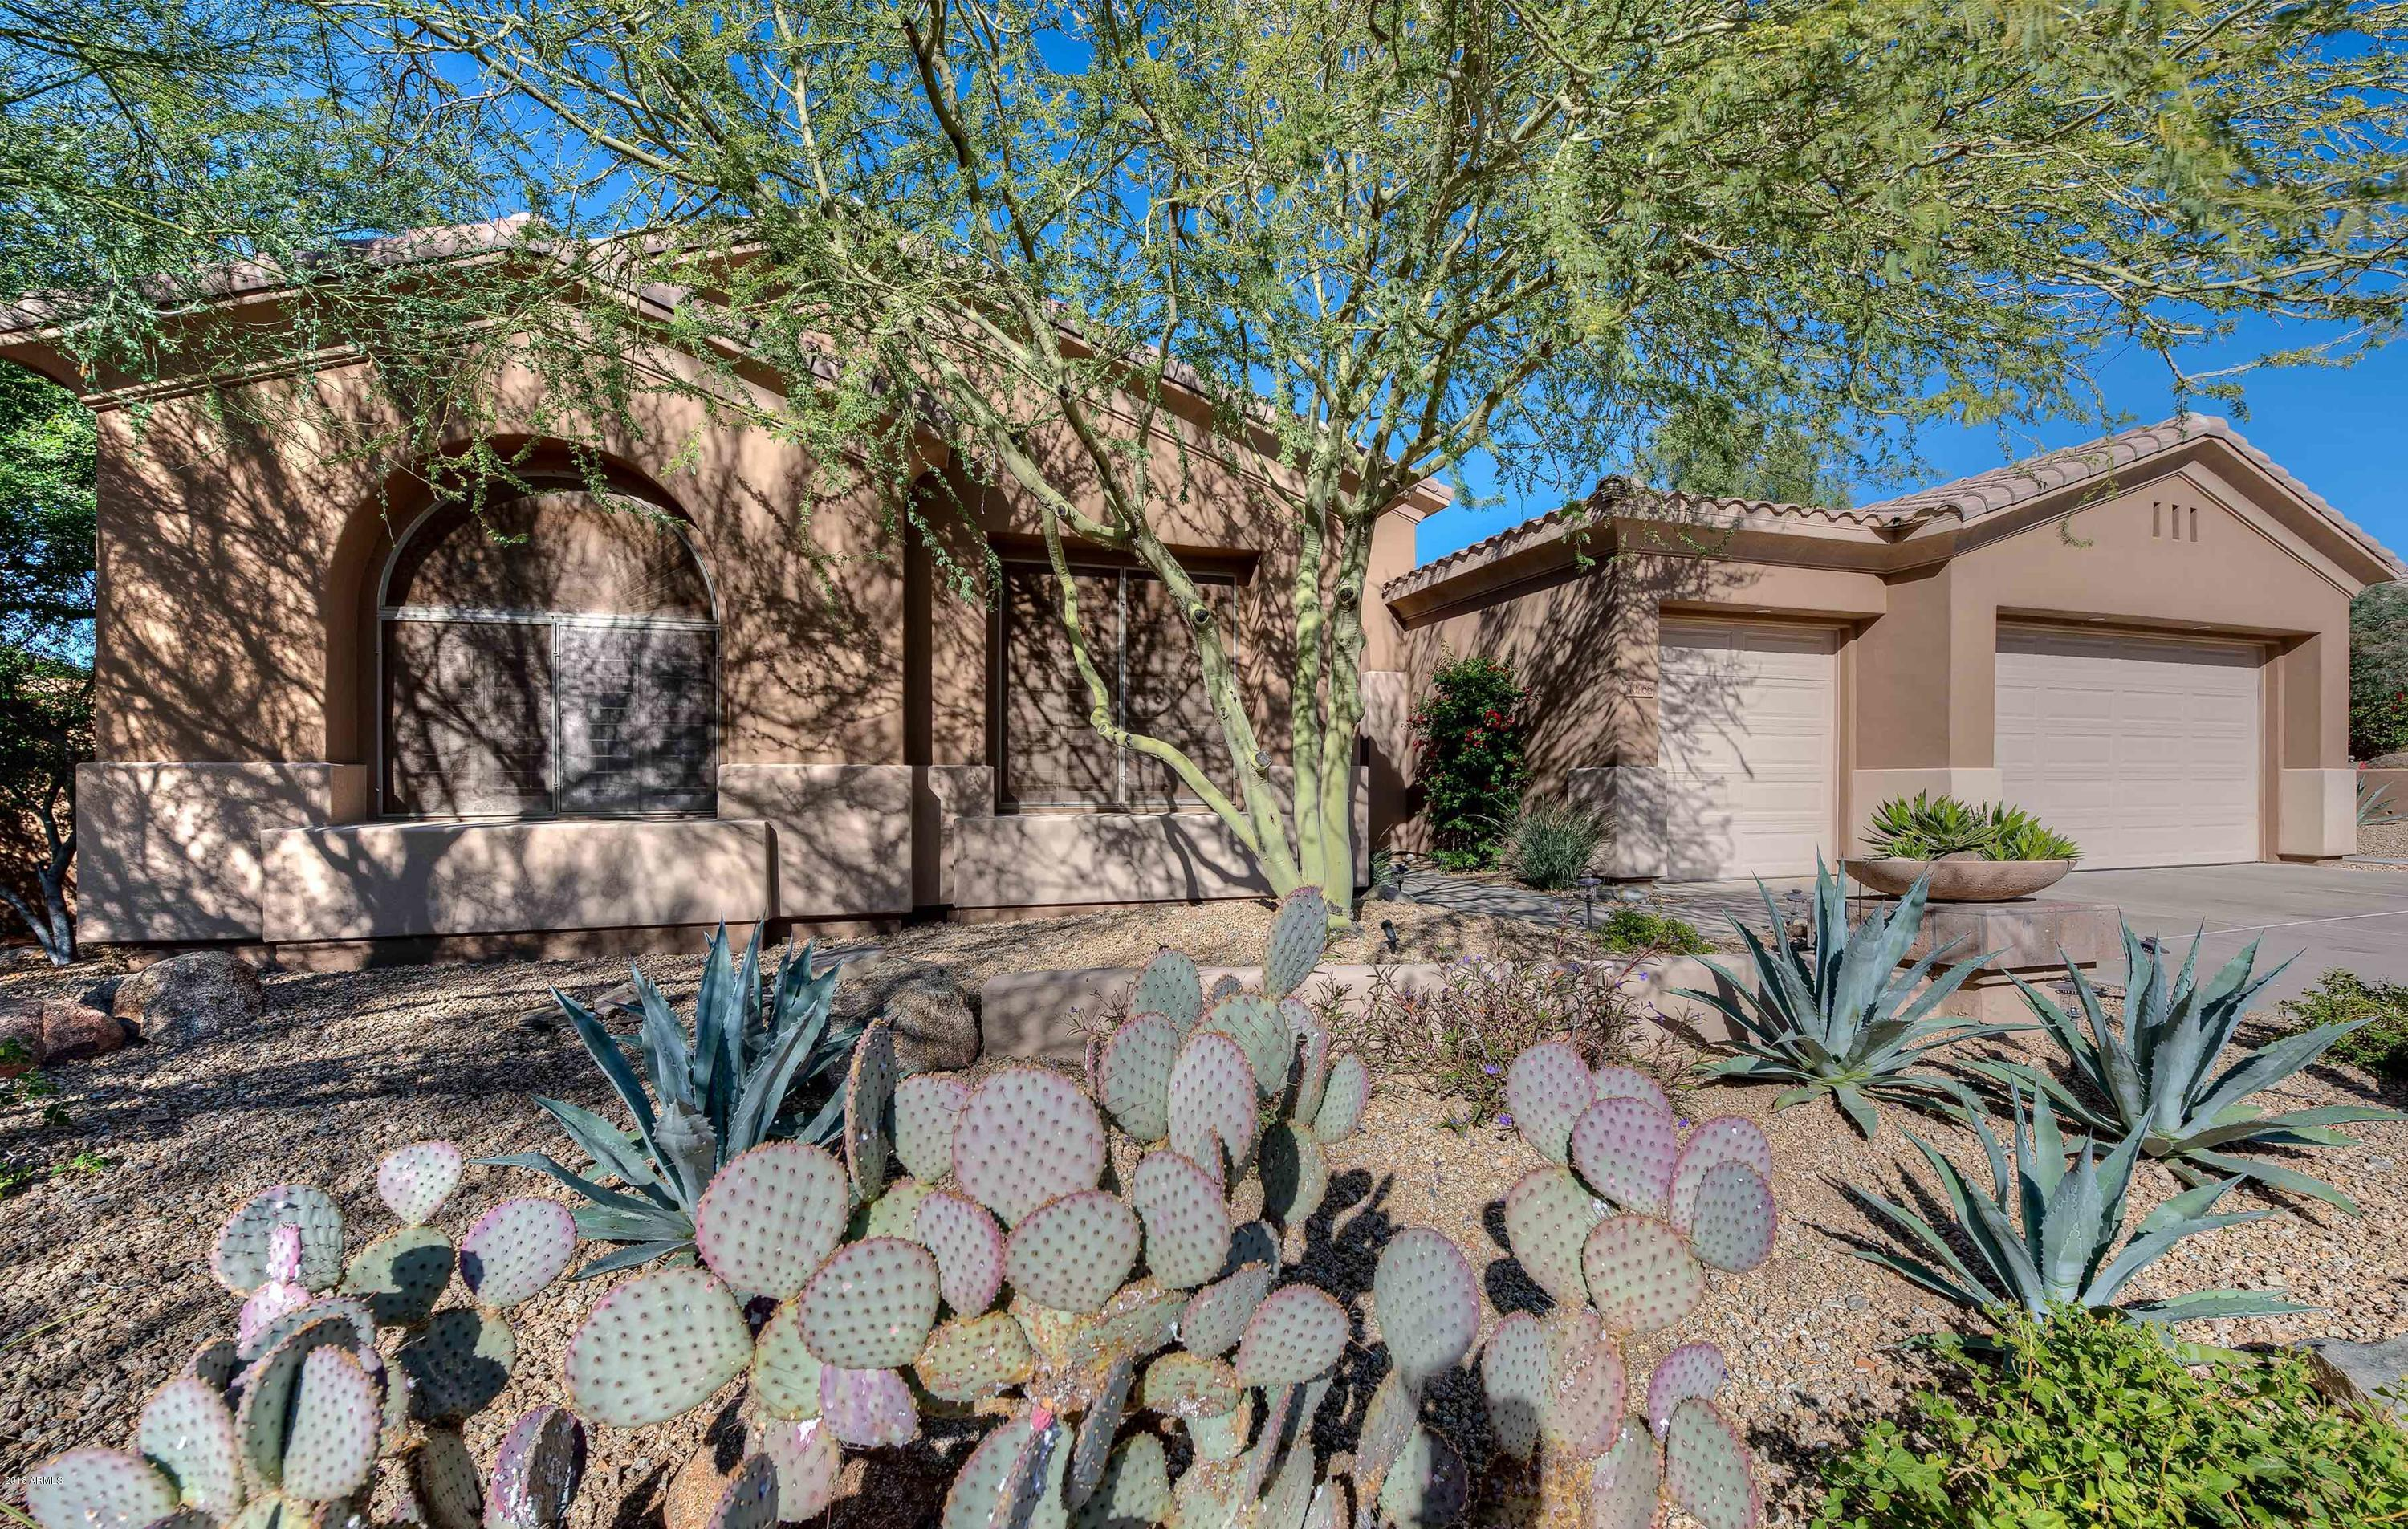 10766 E PALM RIDGE Drive Scottsdale, AZ 85255 - MLS #: 5853157